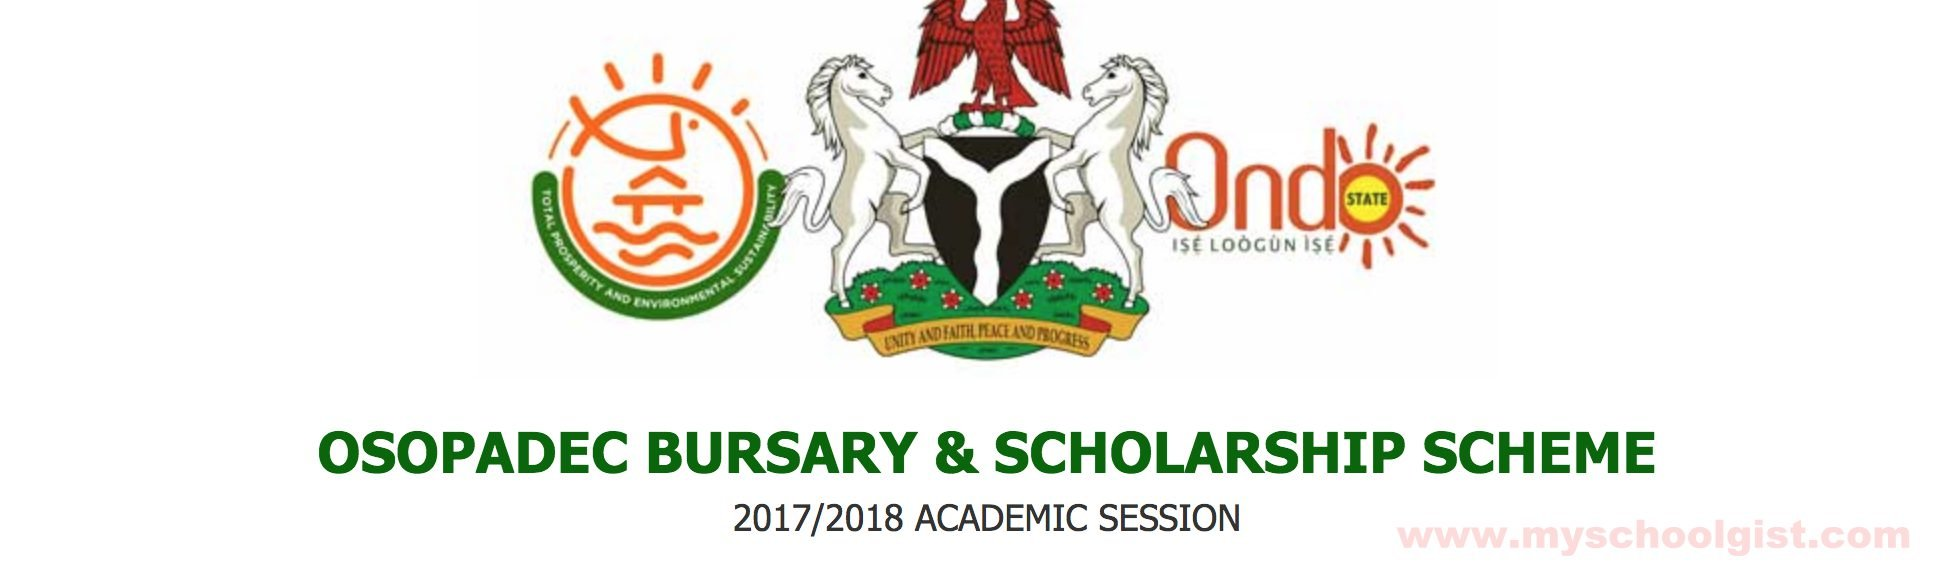 OSOPADEC Bursary and Scholarship Awards